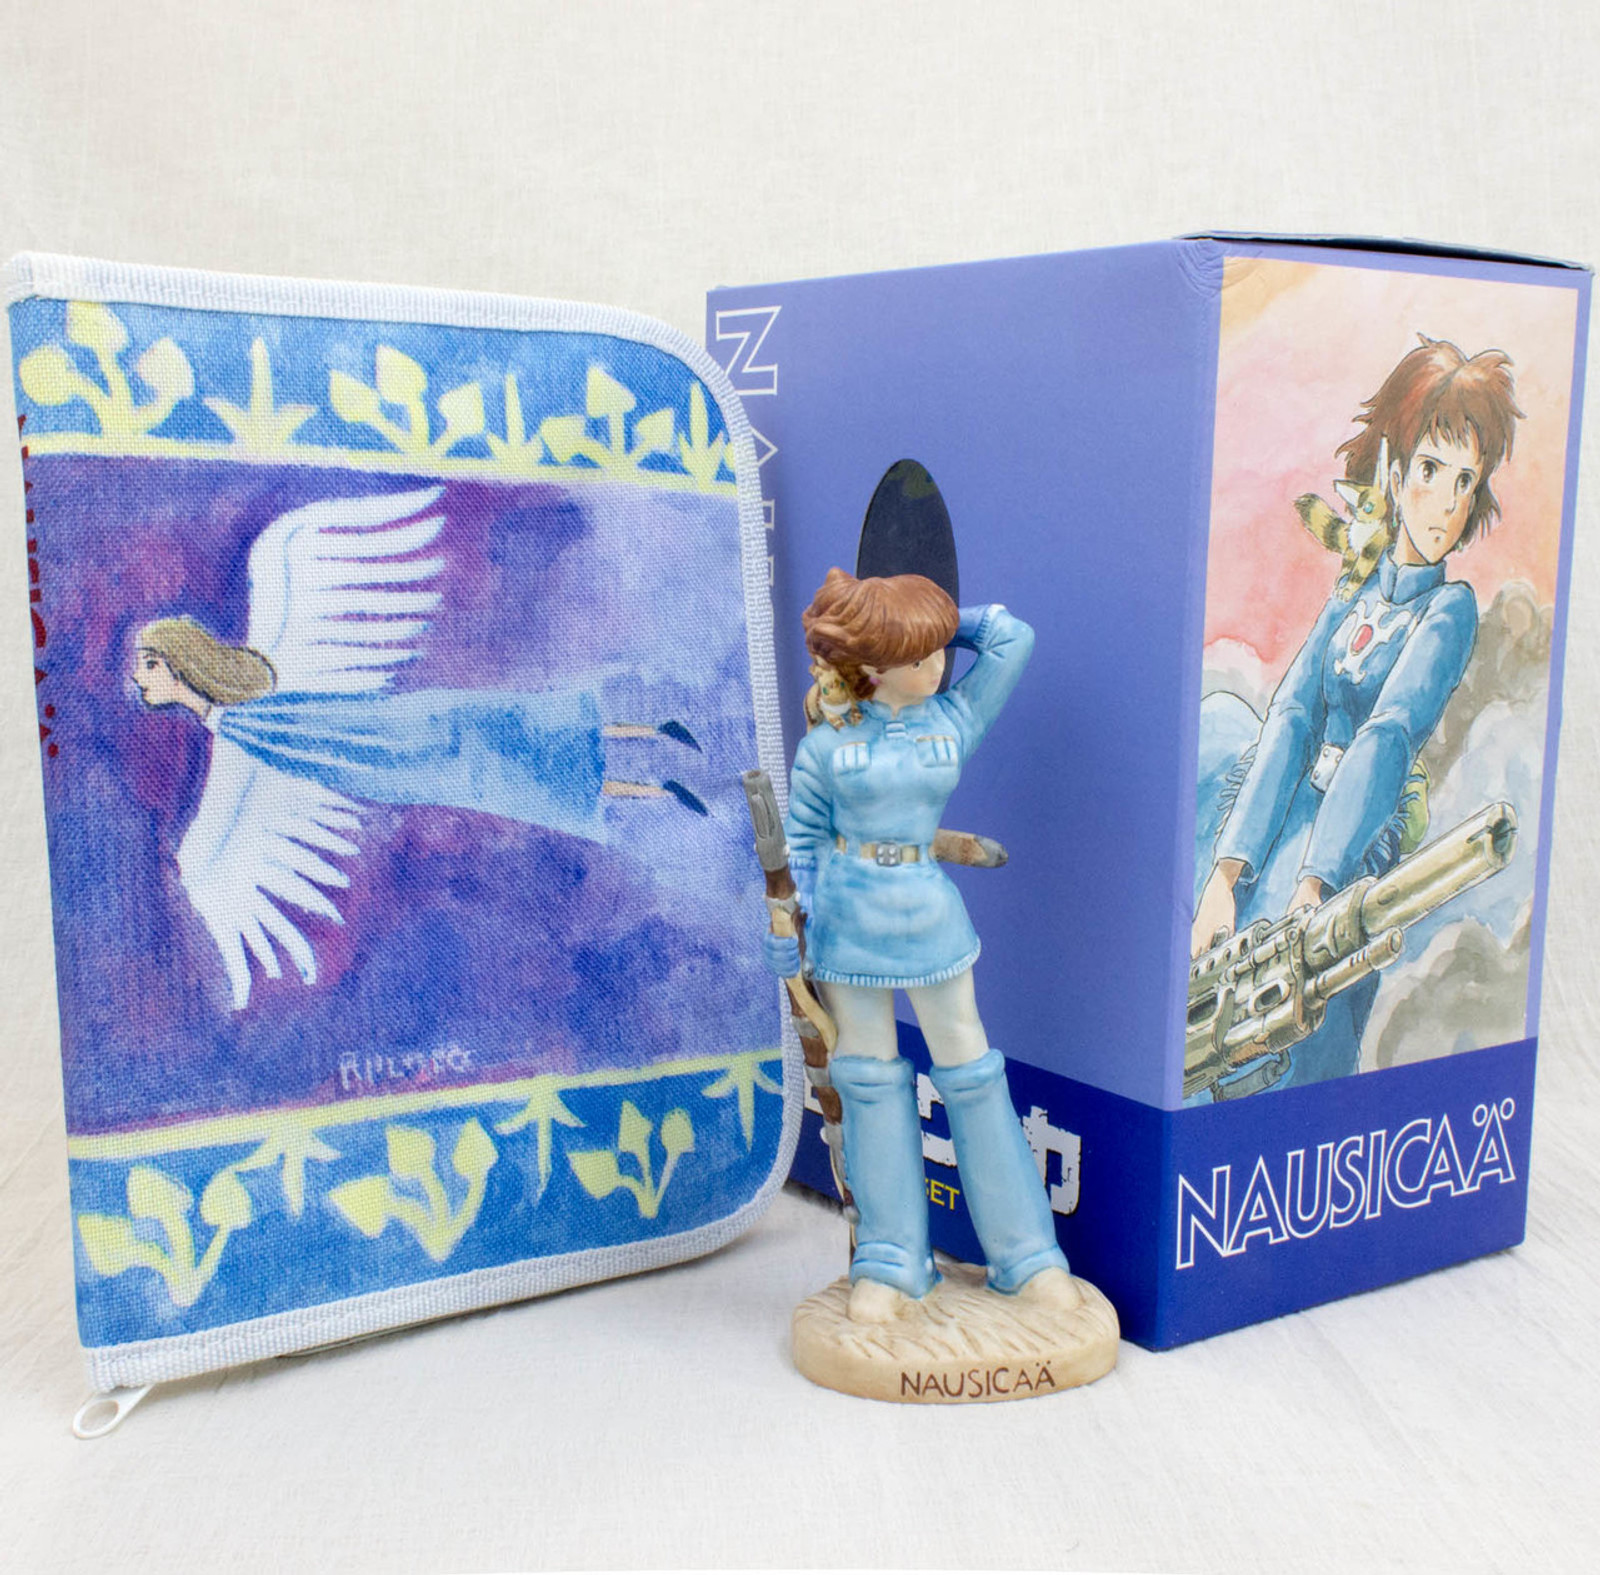 Nausicaa of the Valley of the Wind Ceramic Figure & DVD Case Pouch Ghibli